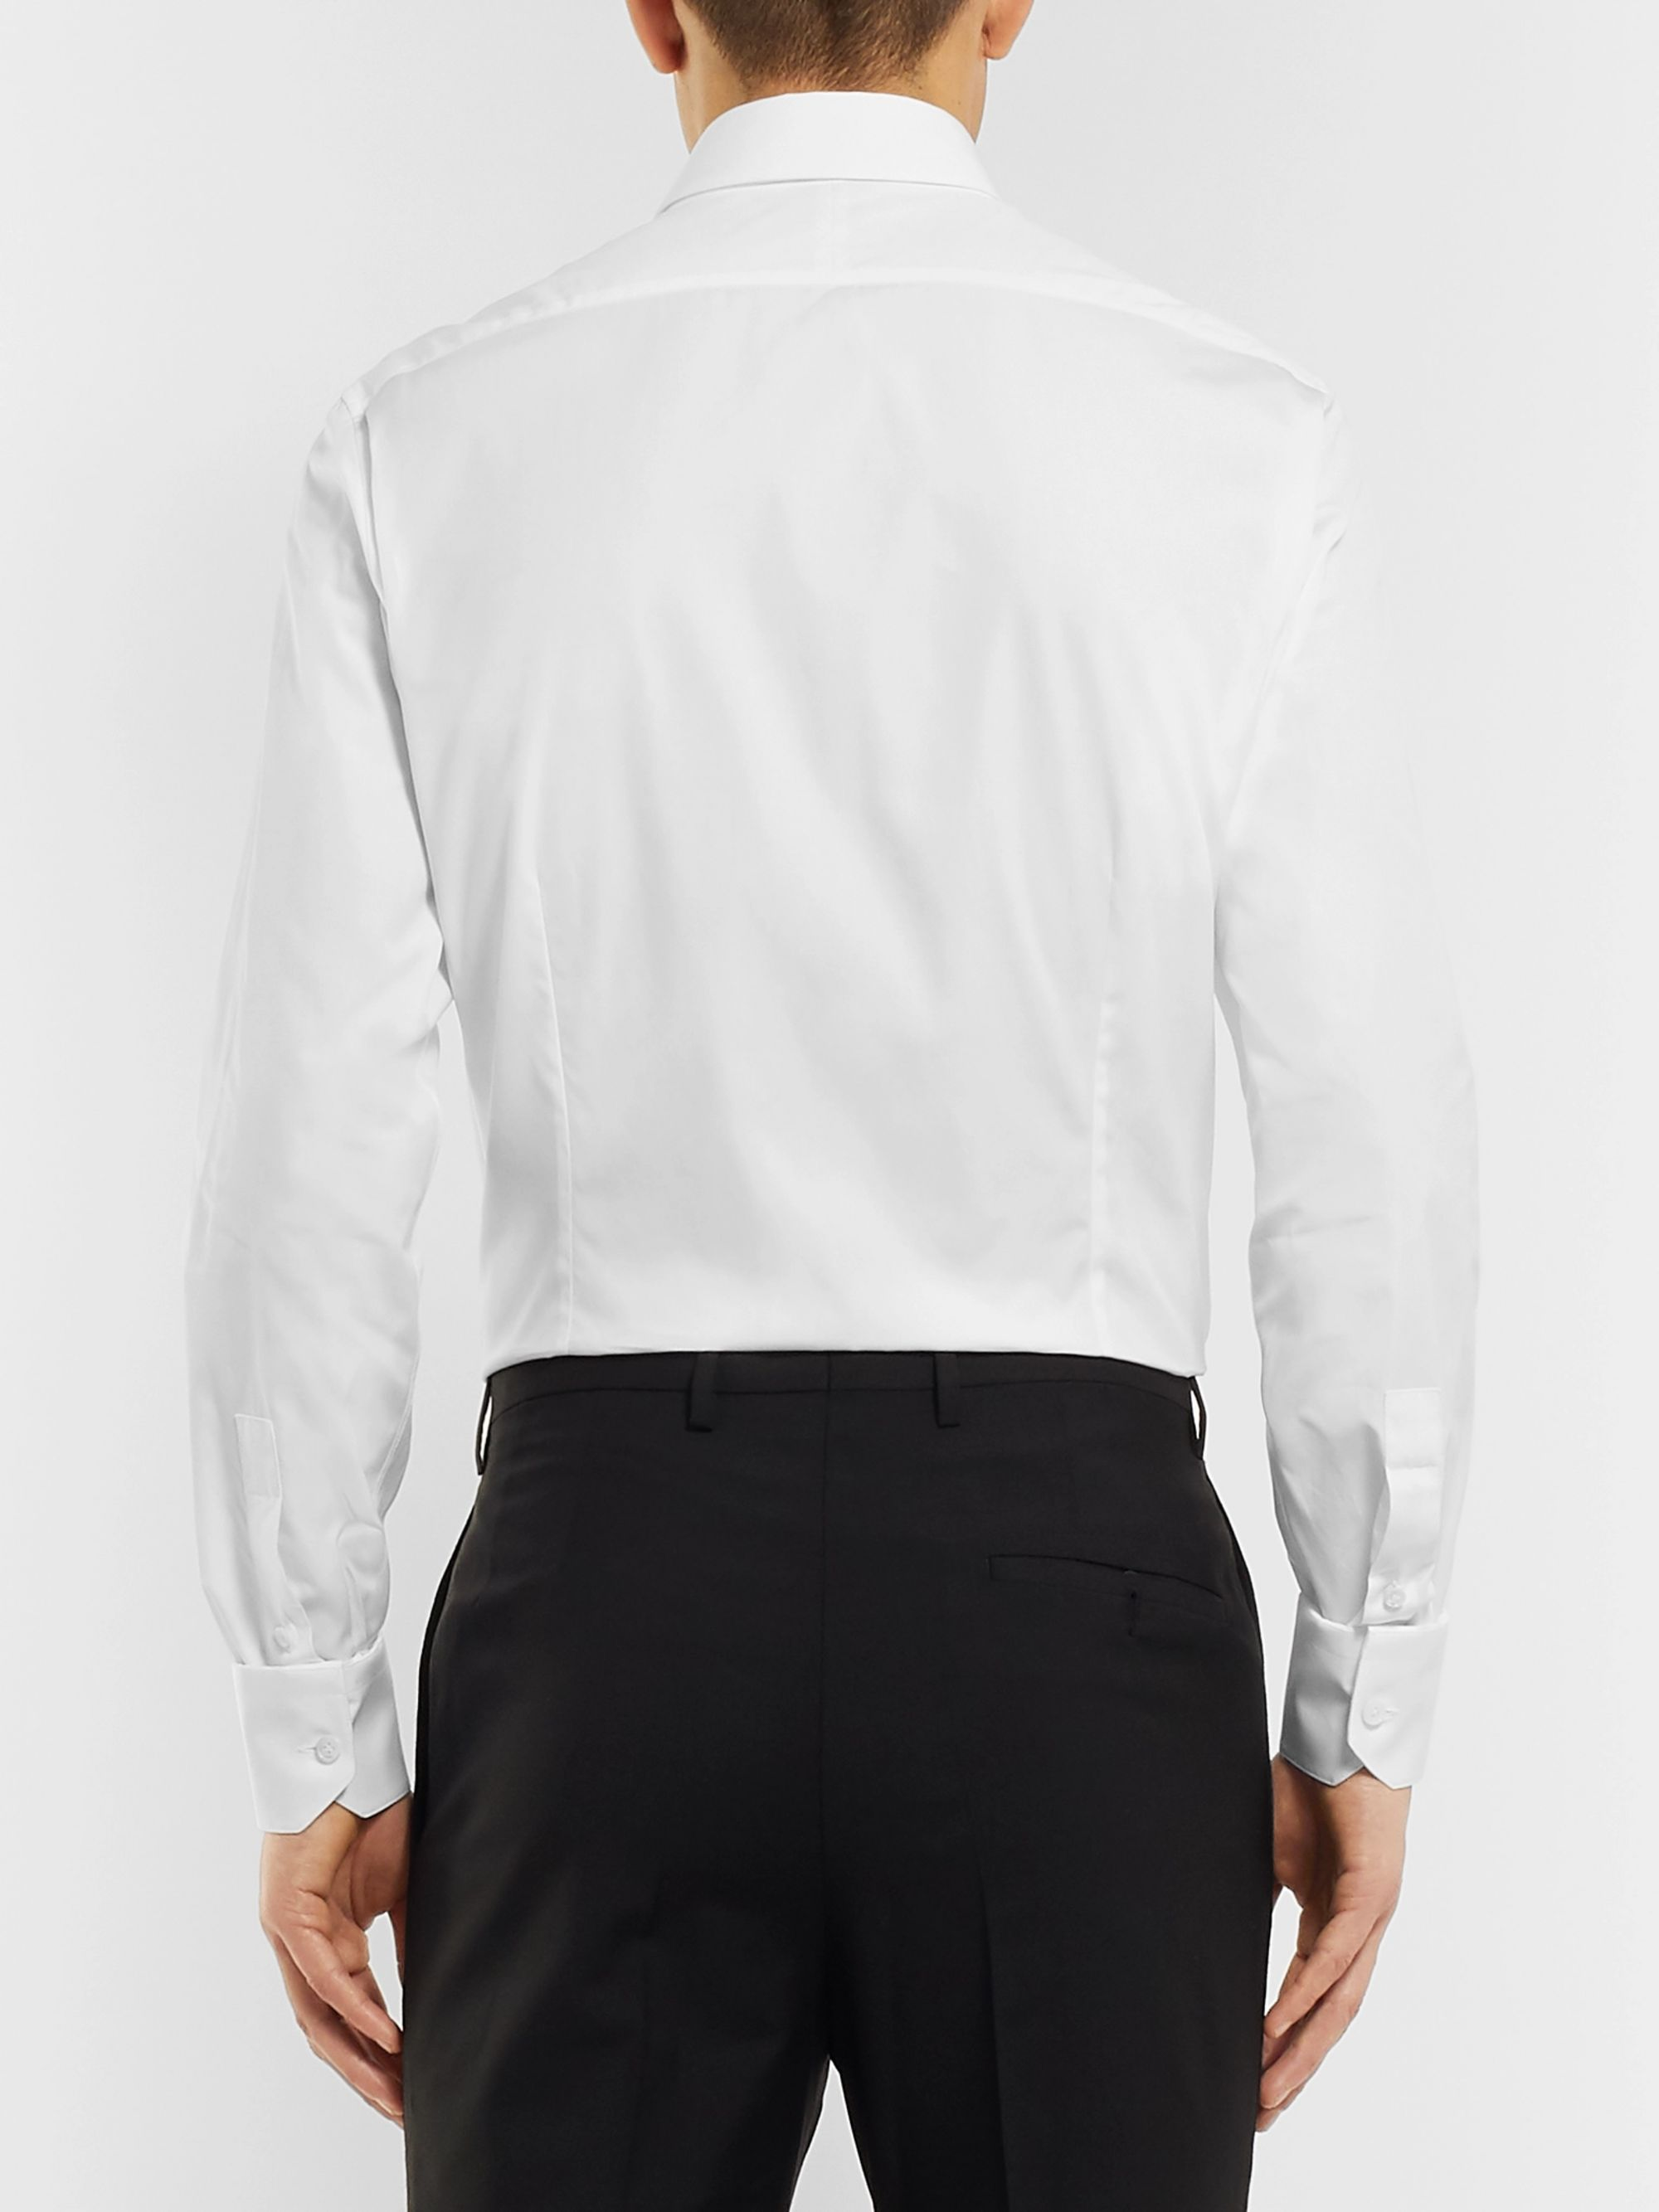 Lanvin White Slim-Fit Bib-Front Cotton-Poplin Tuxedo Shirt